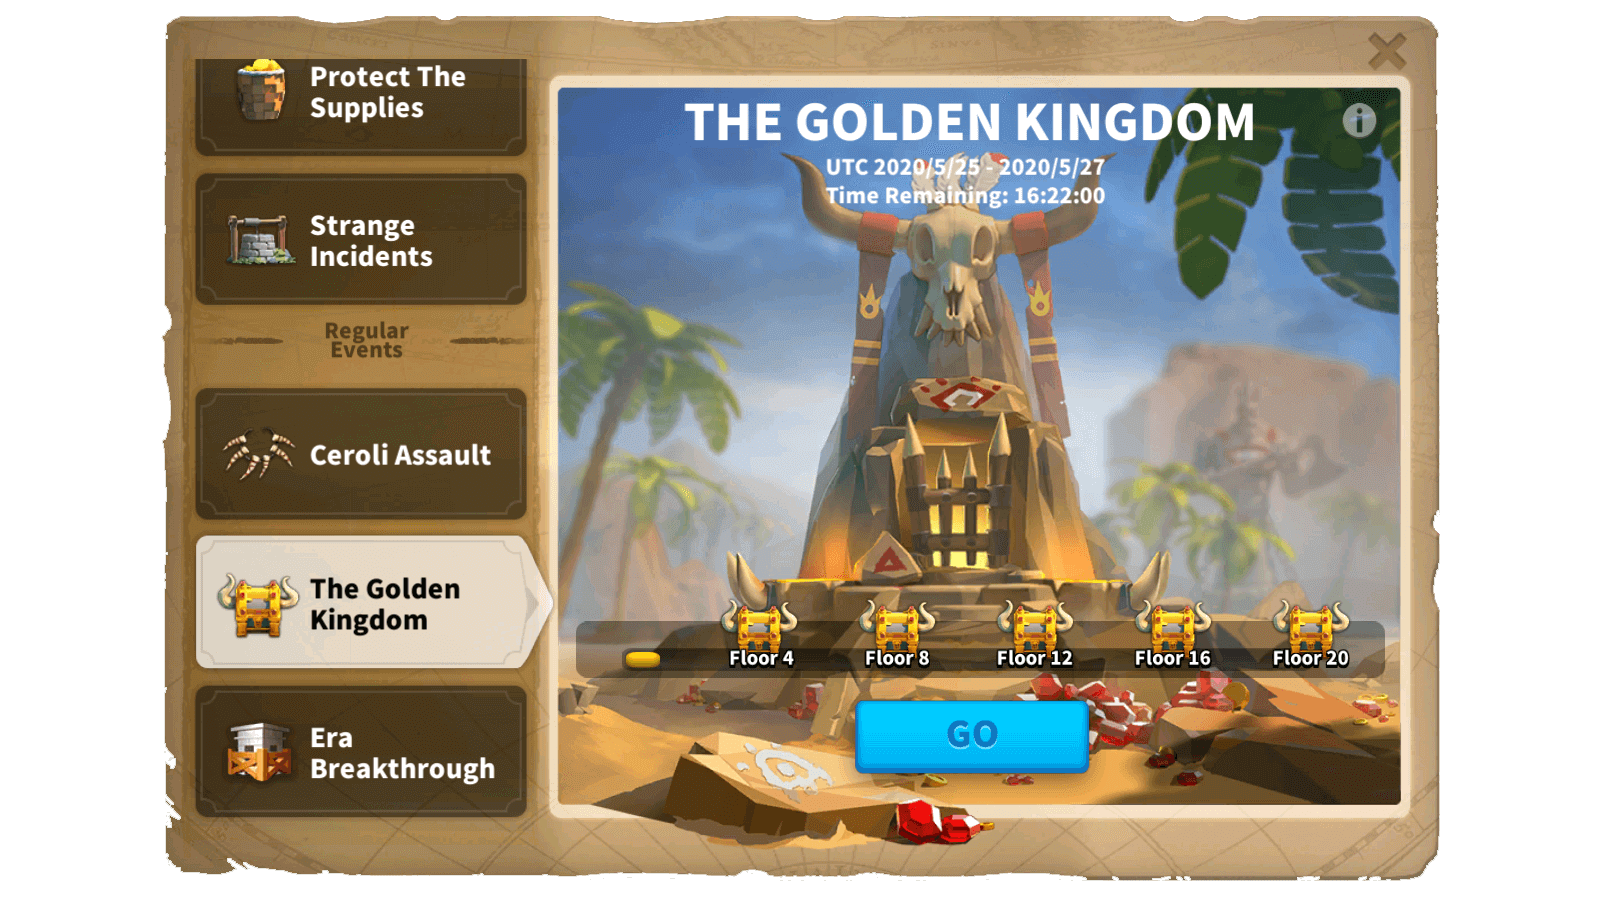 The Golden Kingdom Event